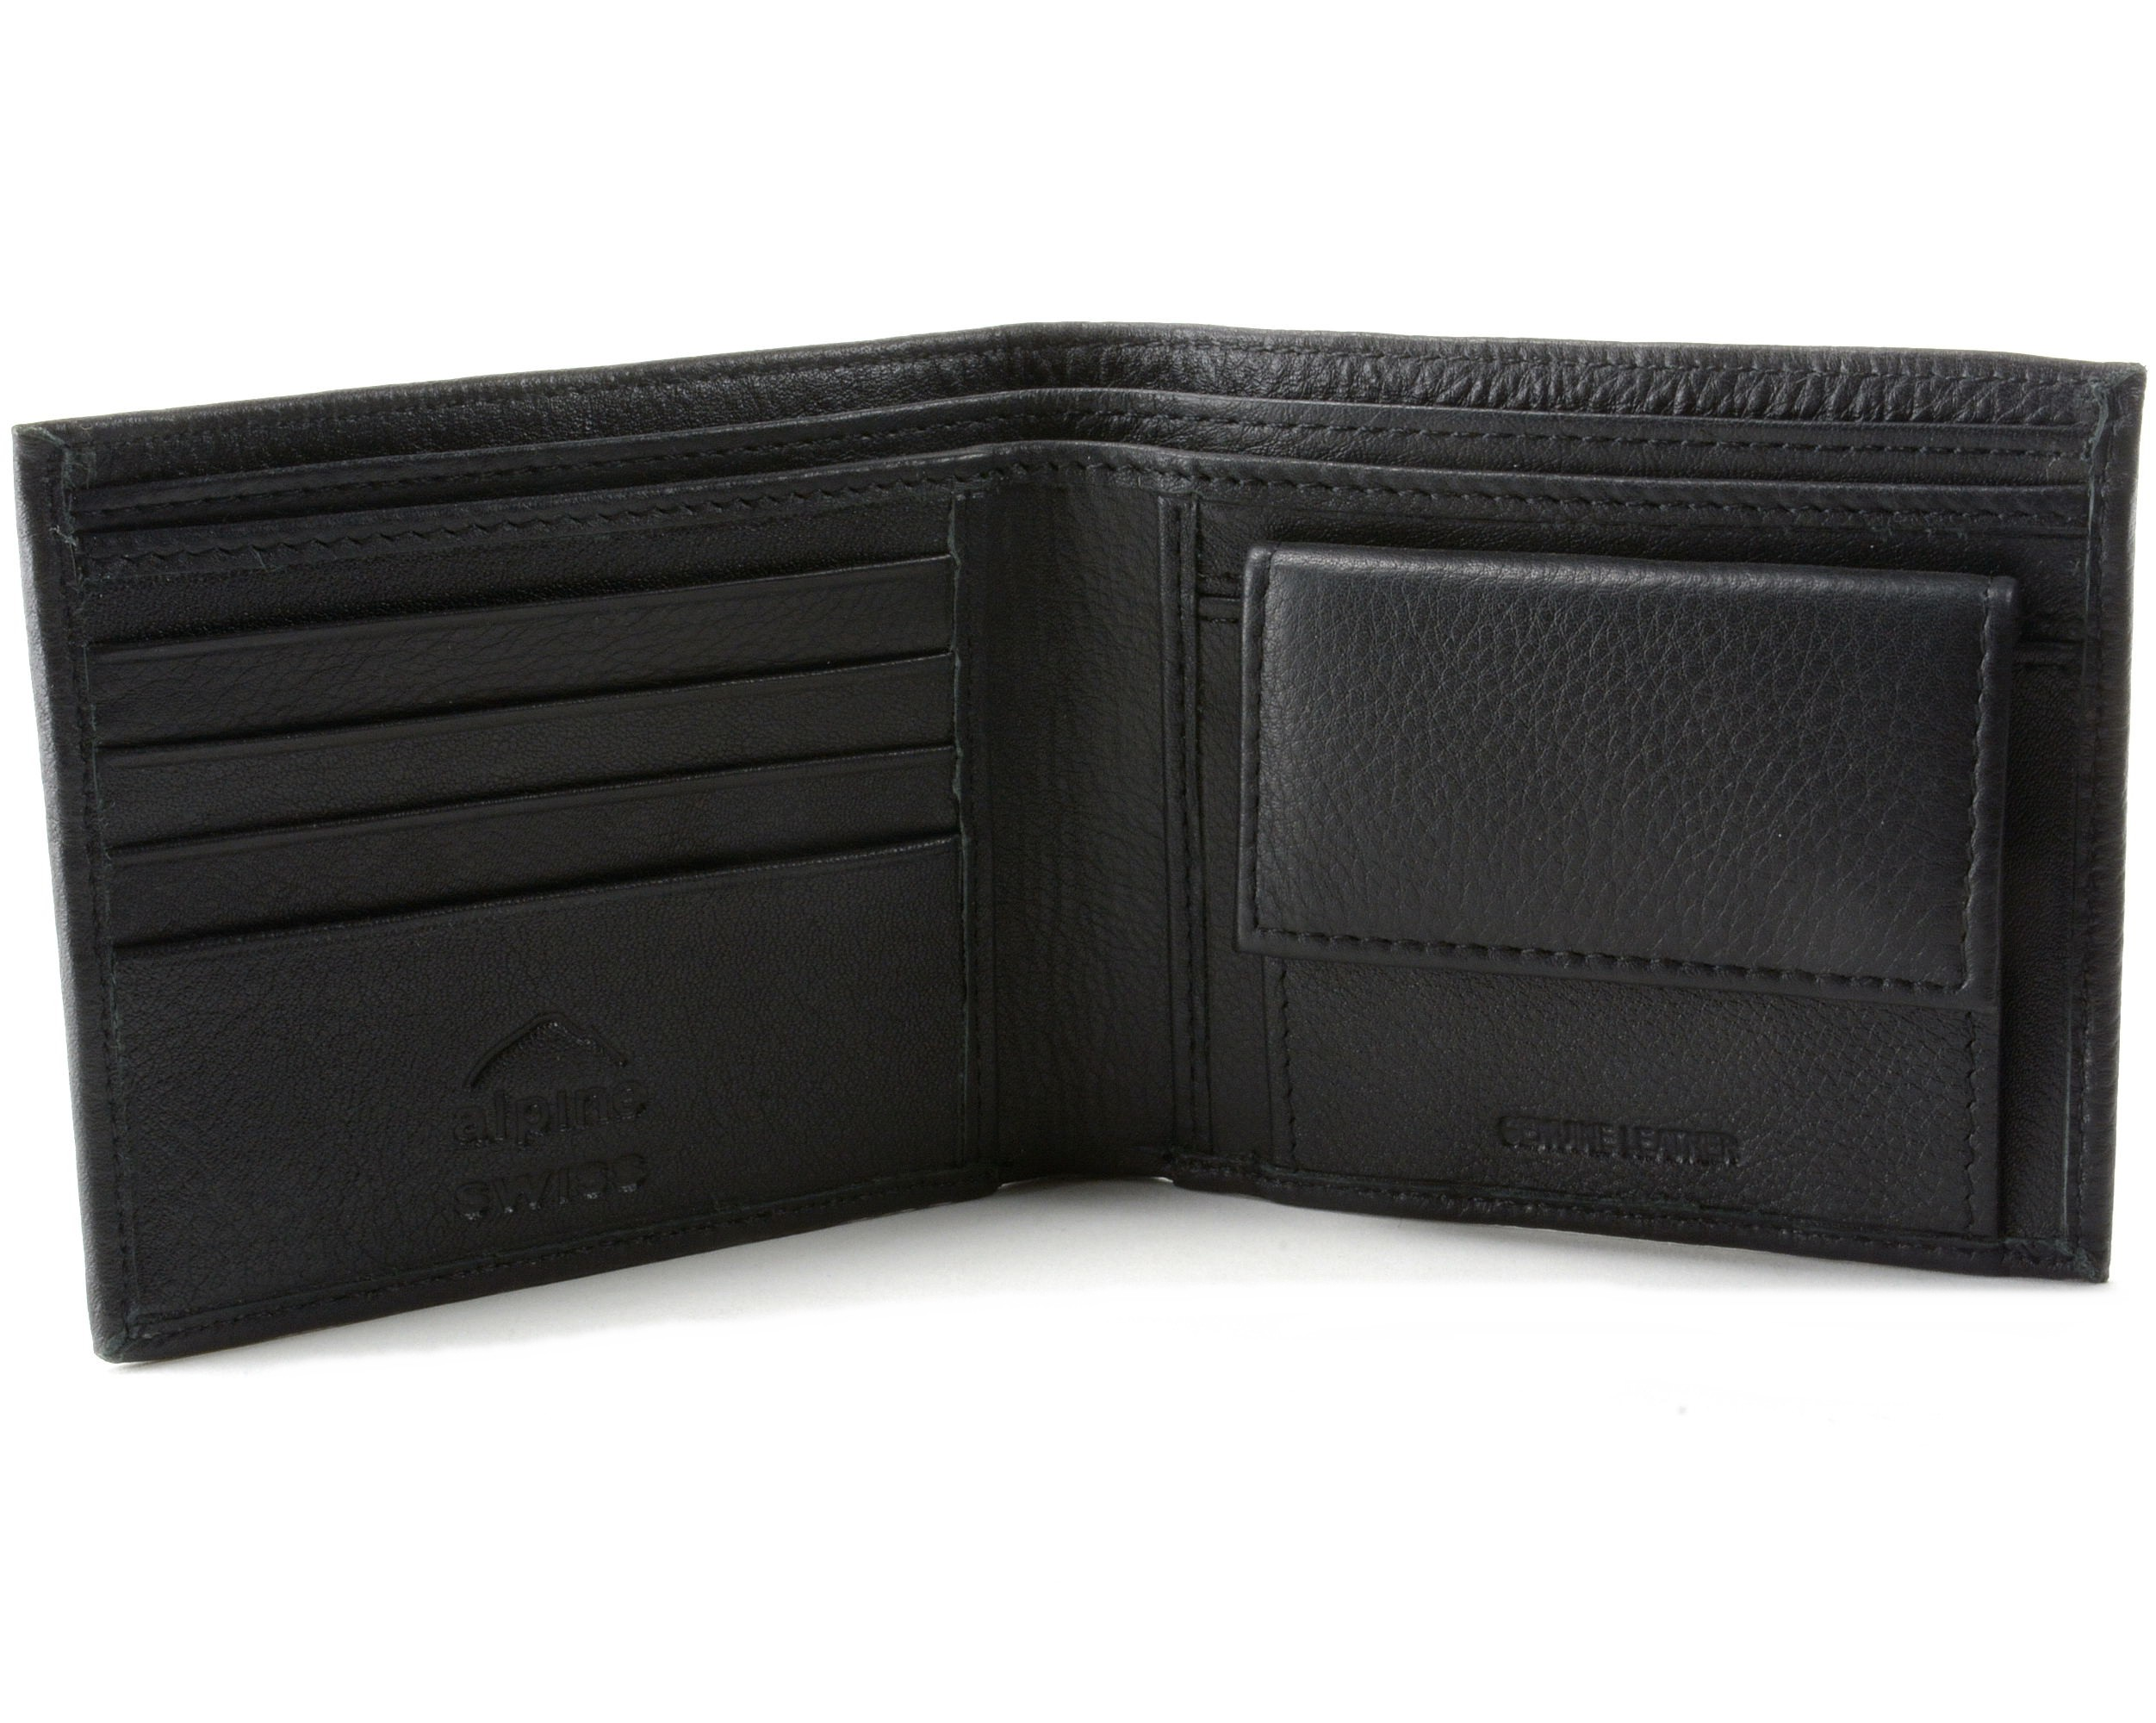 Winn International Men's Leather With Zippered Coin Pocket Wallet